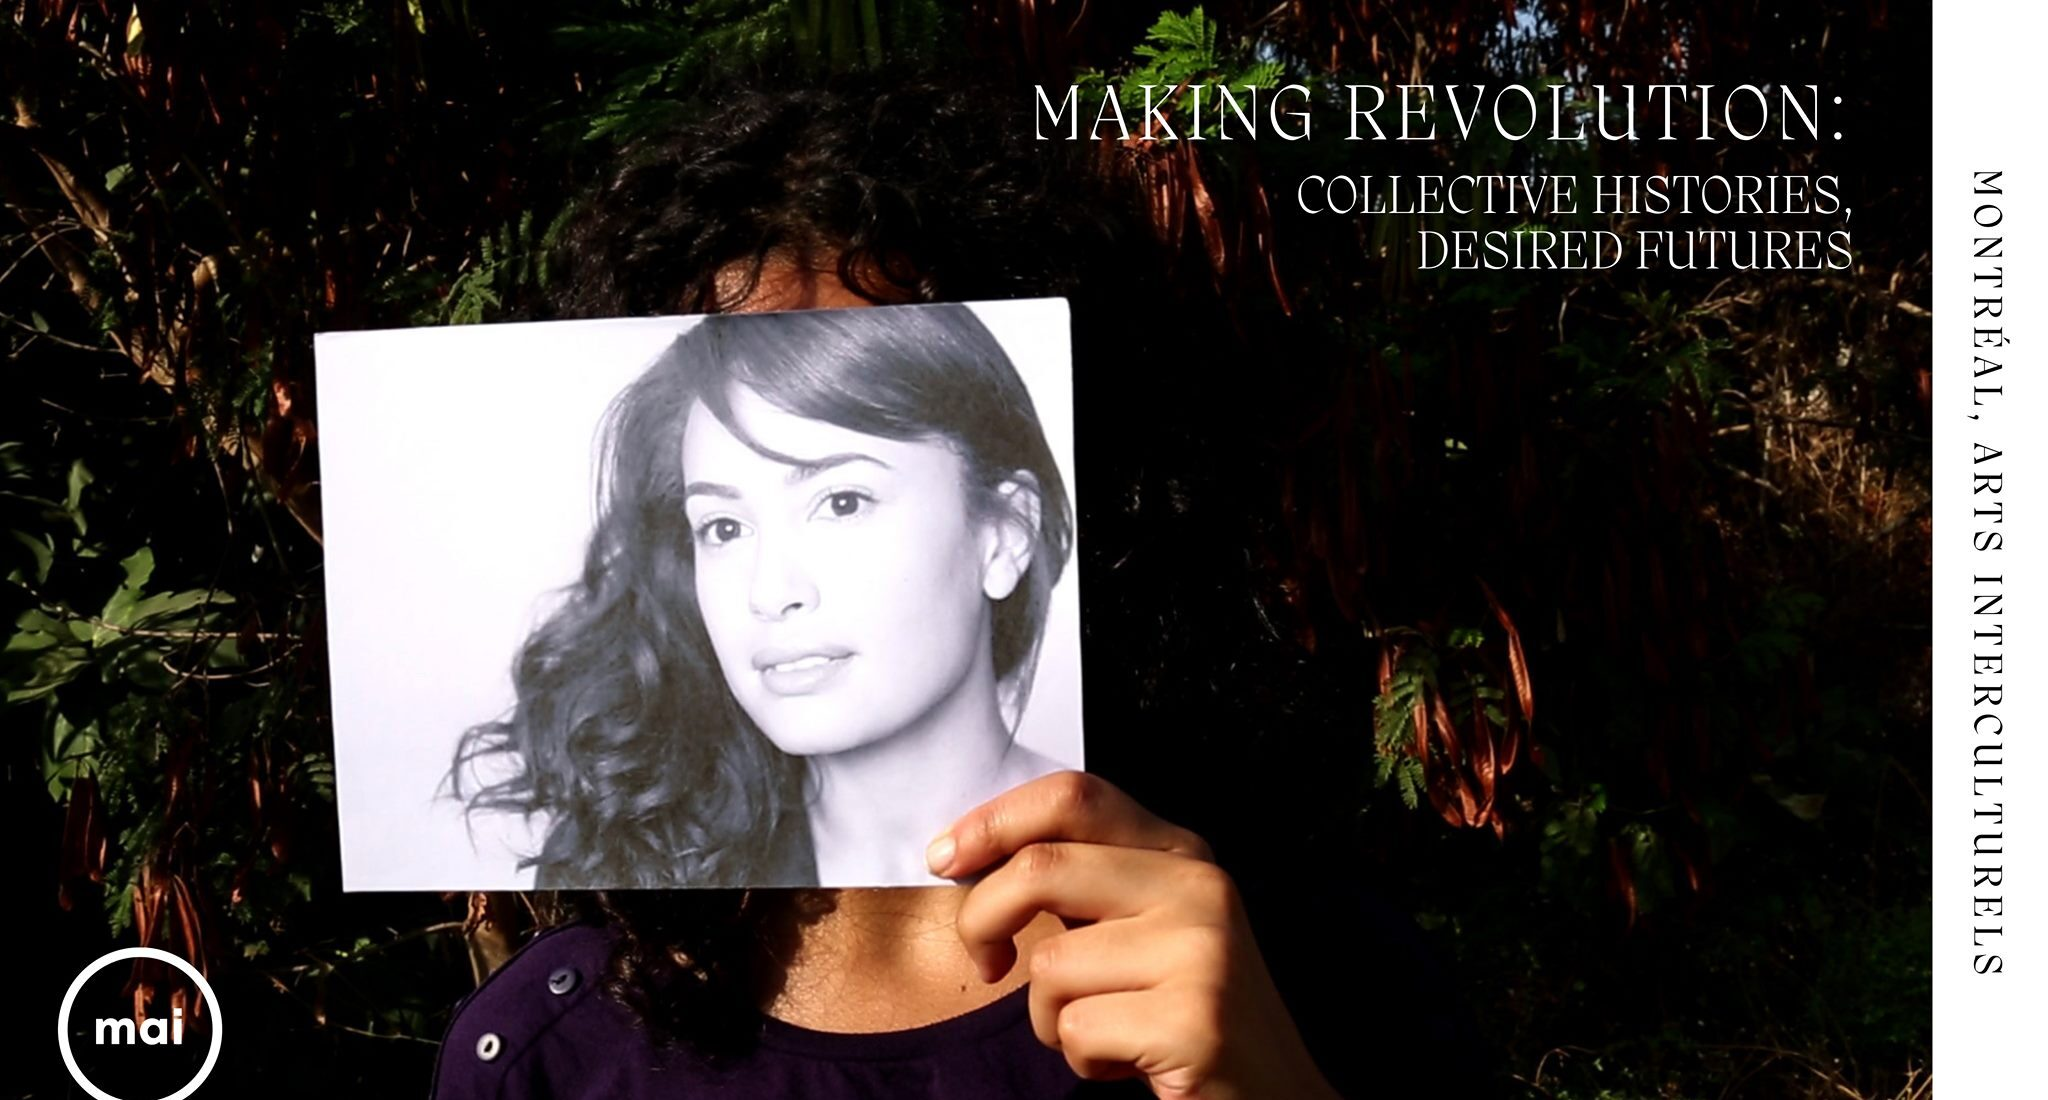 making-revolution-MAI-have-you-ever-killed-a-bear-or-becoming-jamila-marwa-arsanios-credit-mor-charpentier